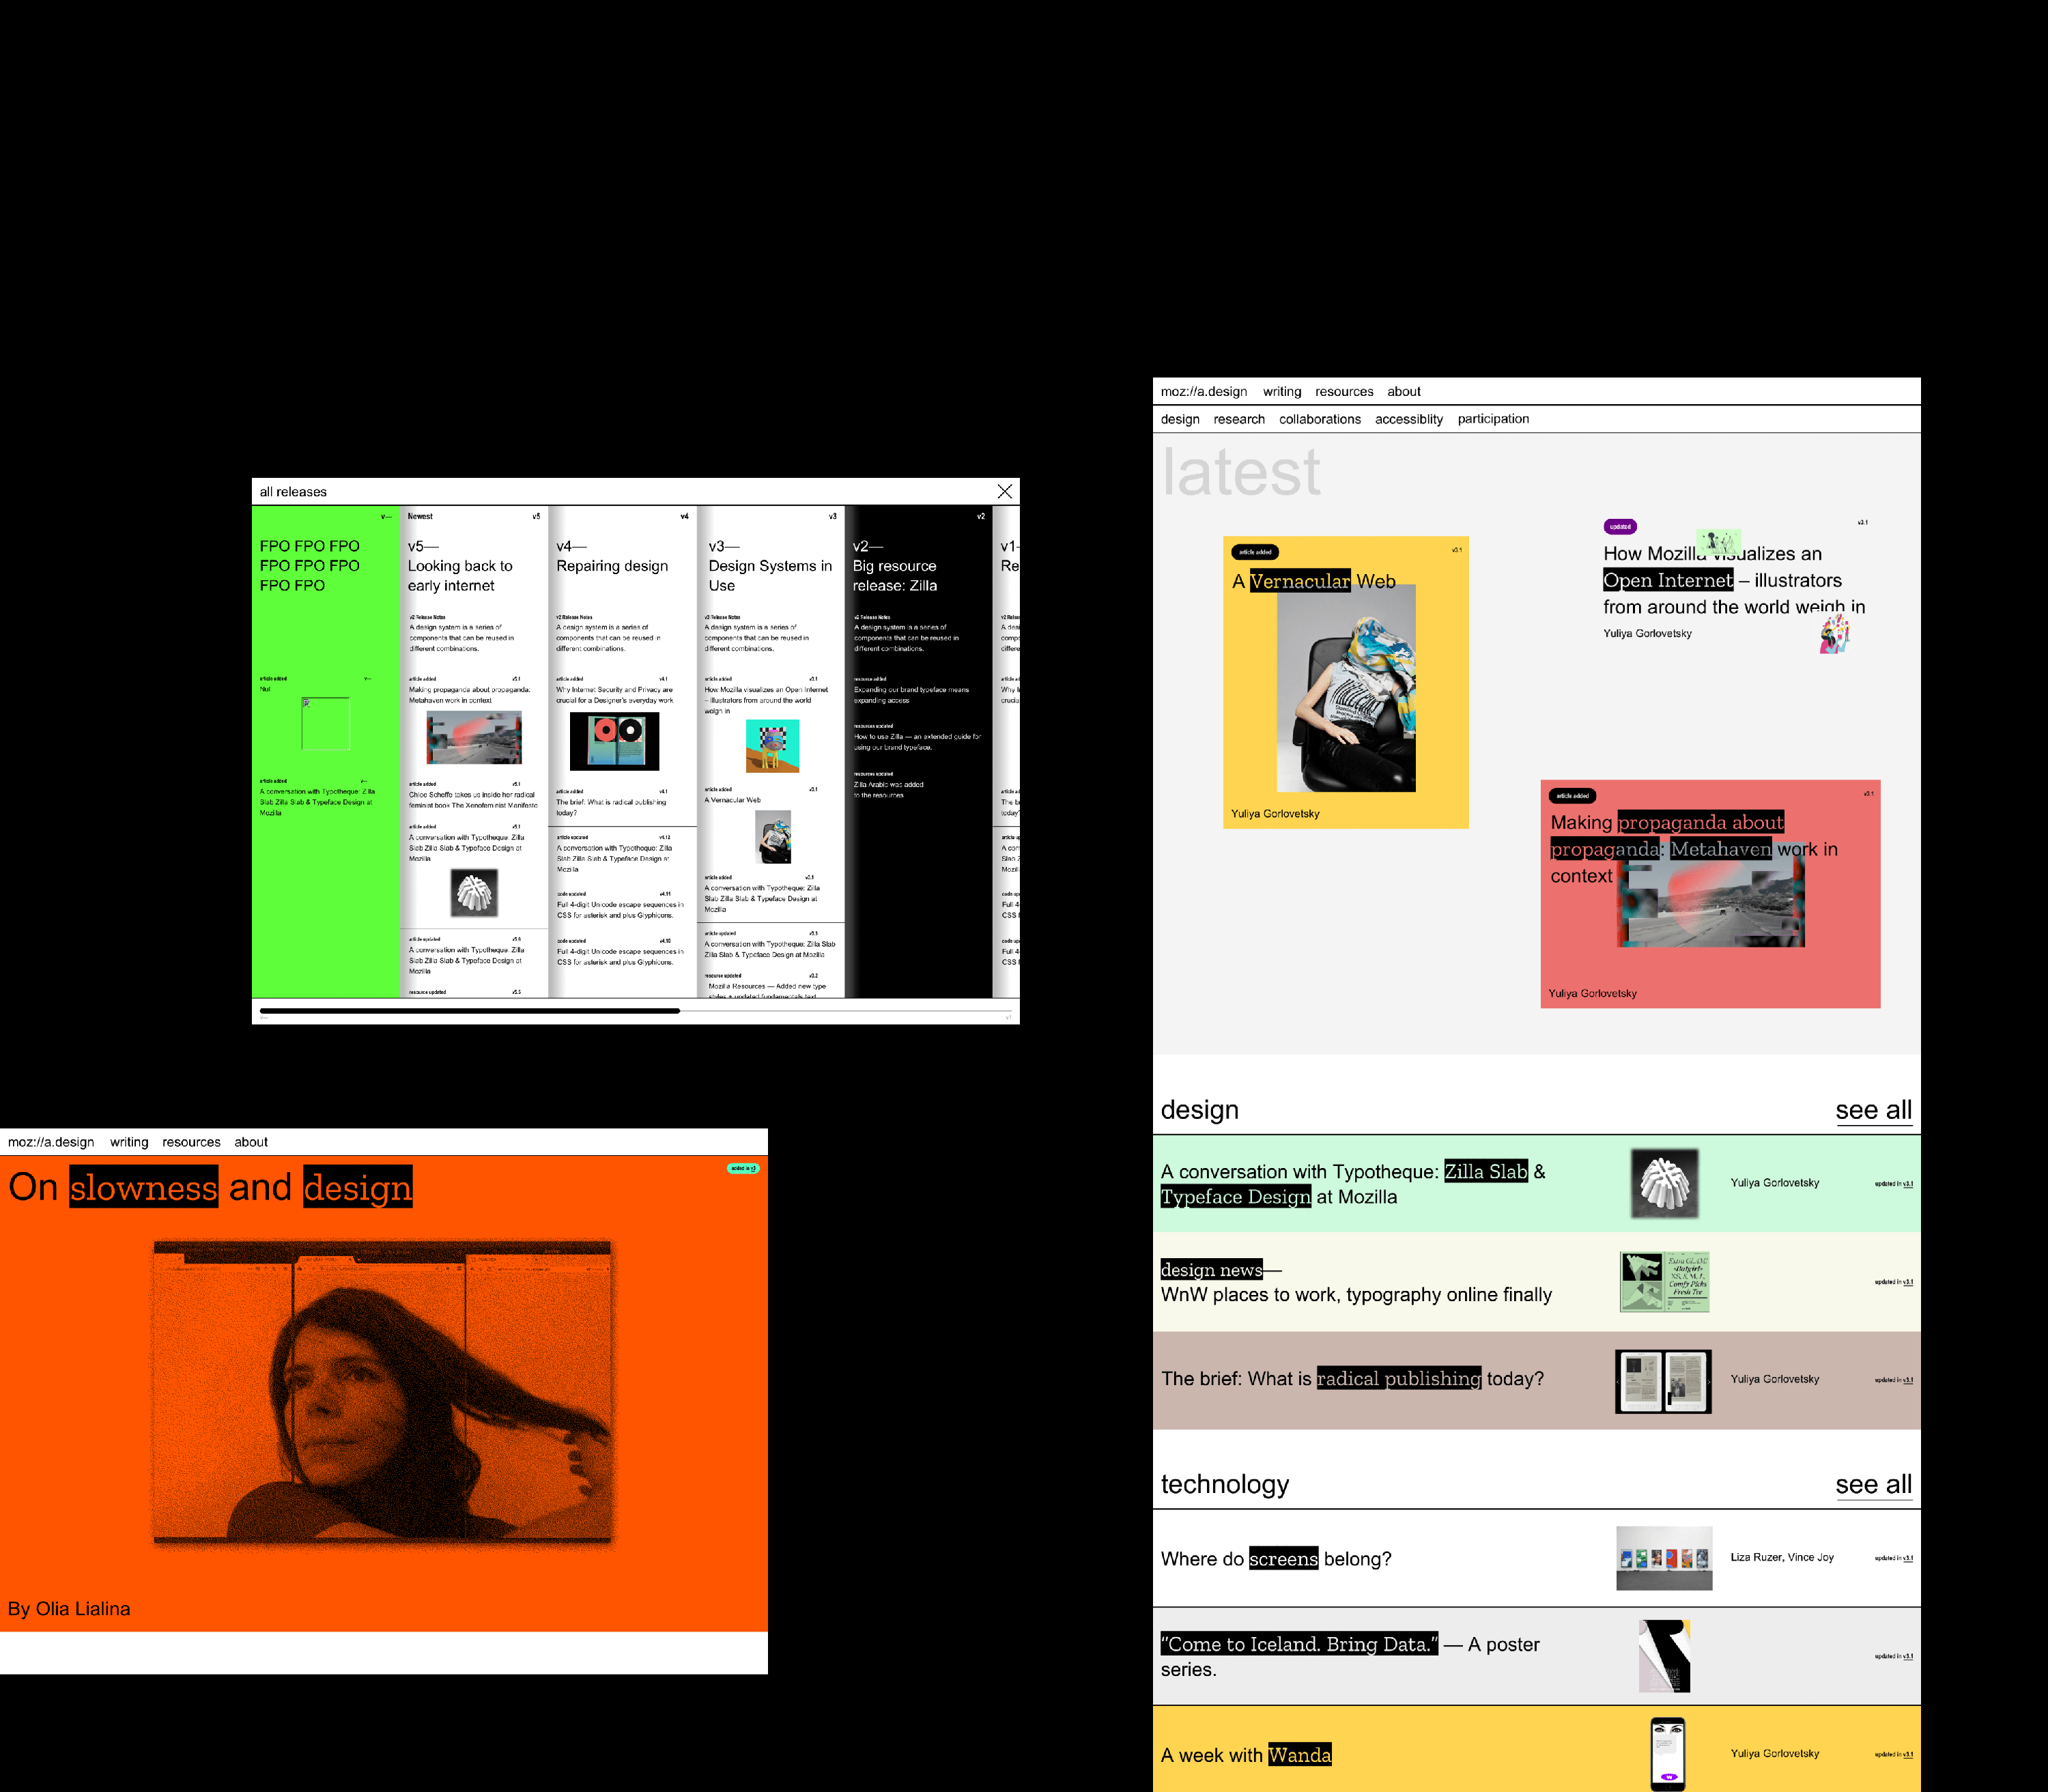 Screens of early explorations in the design process